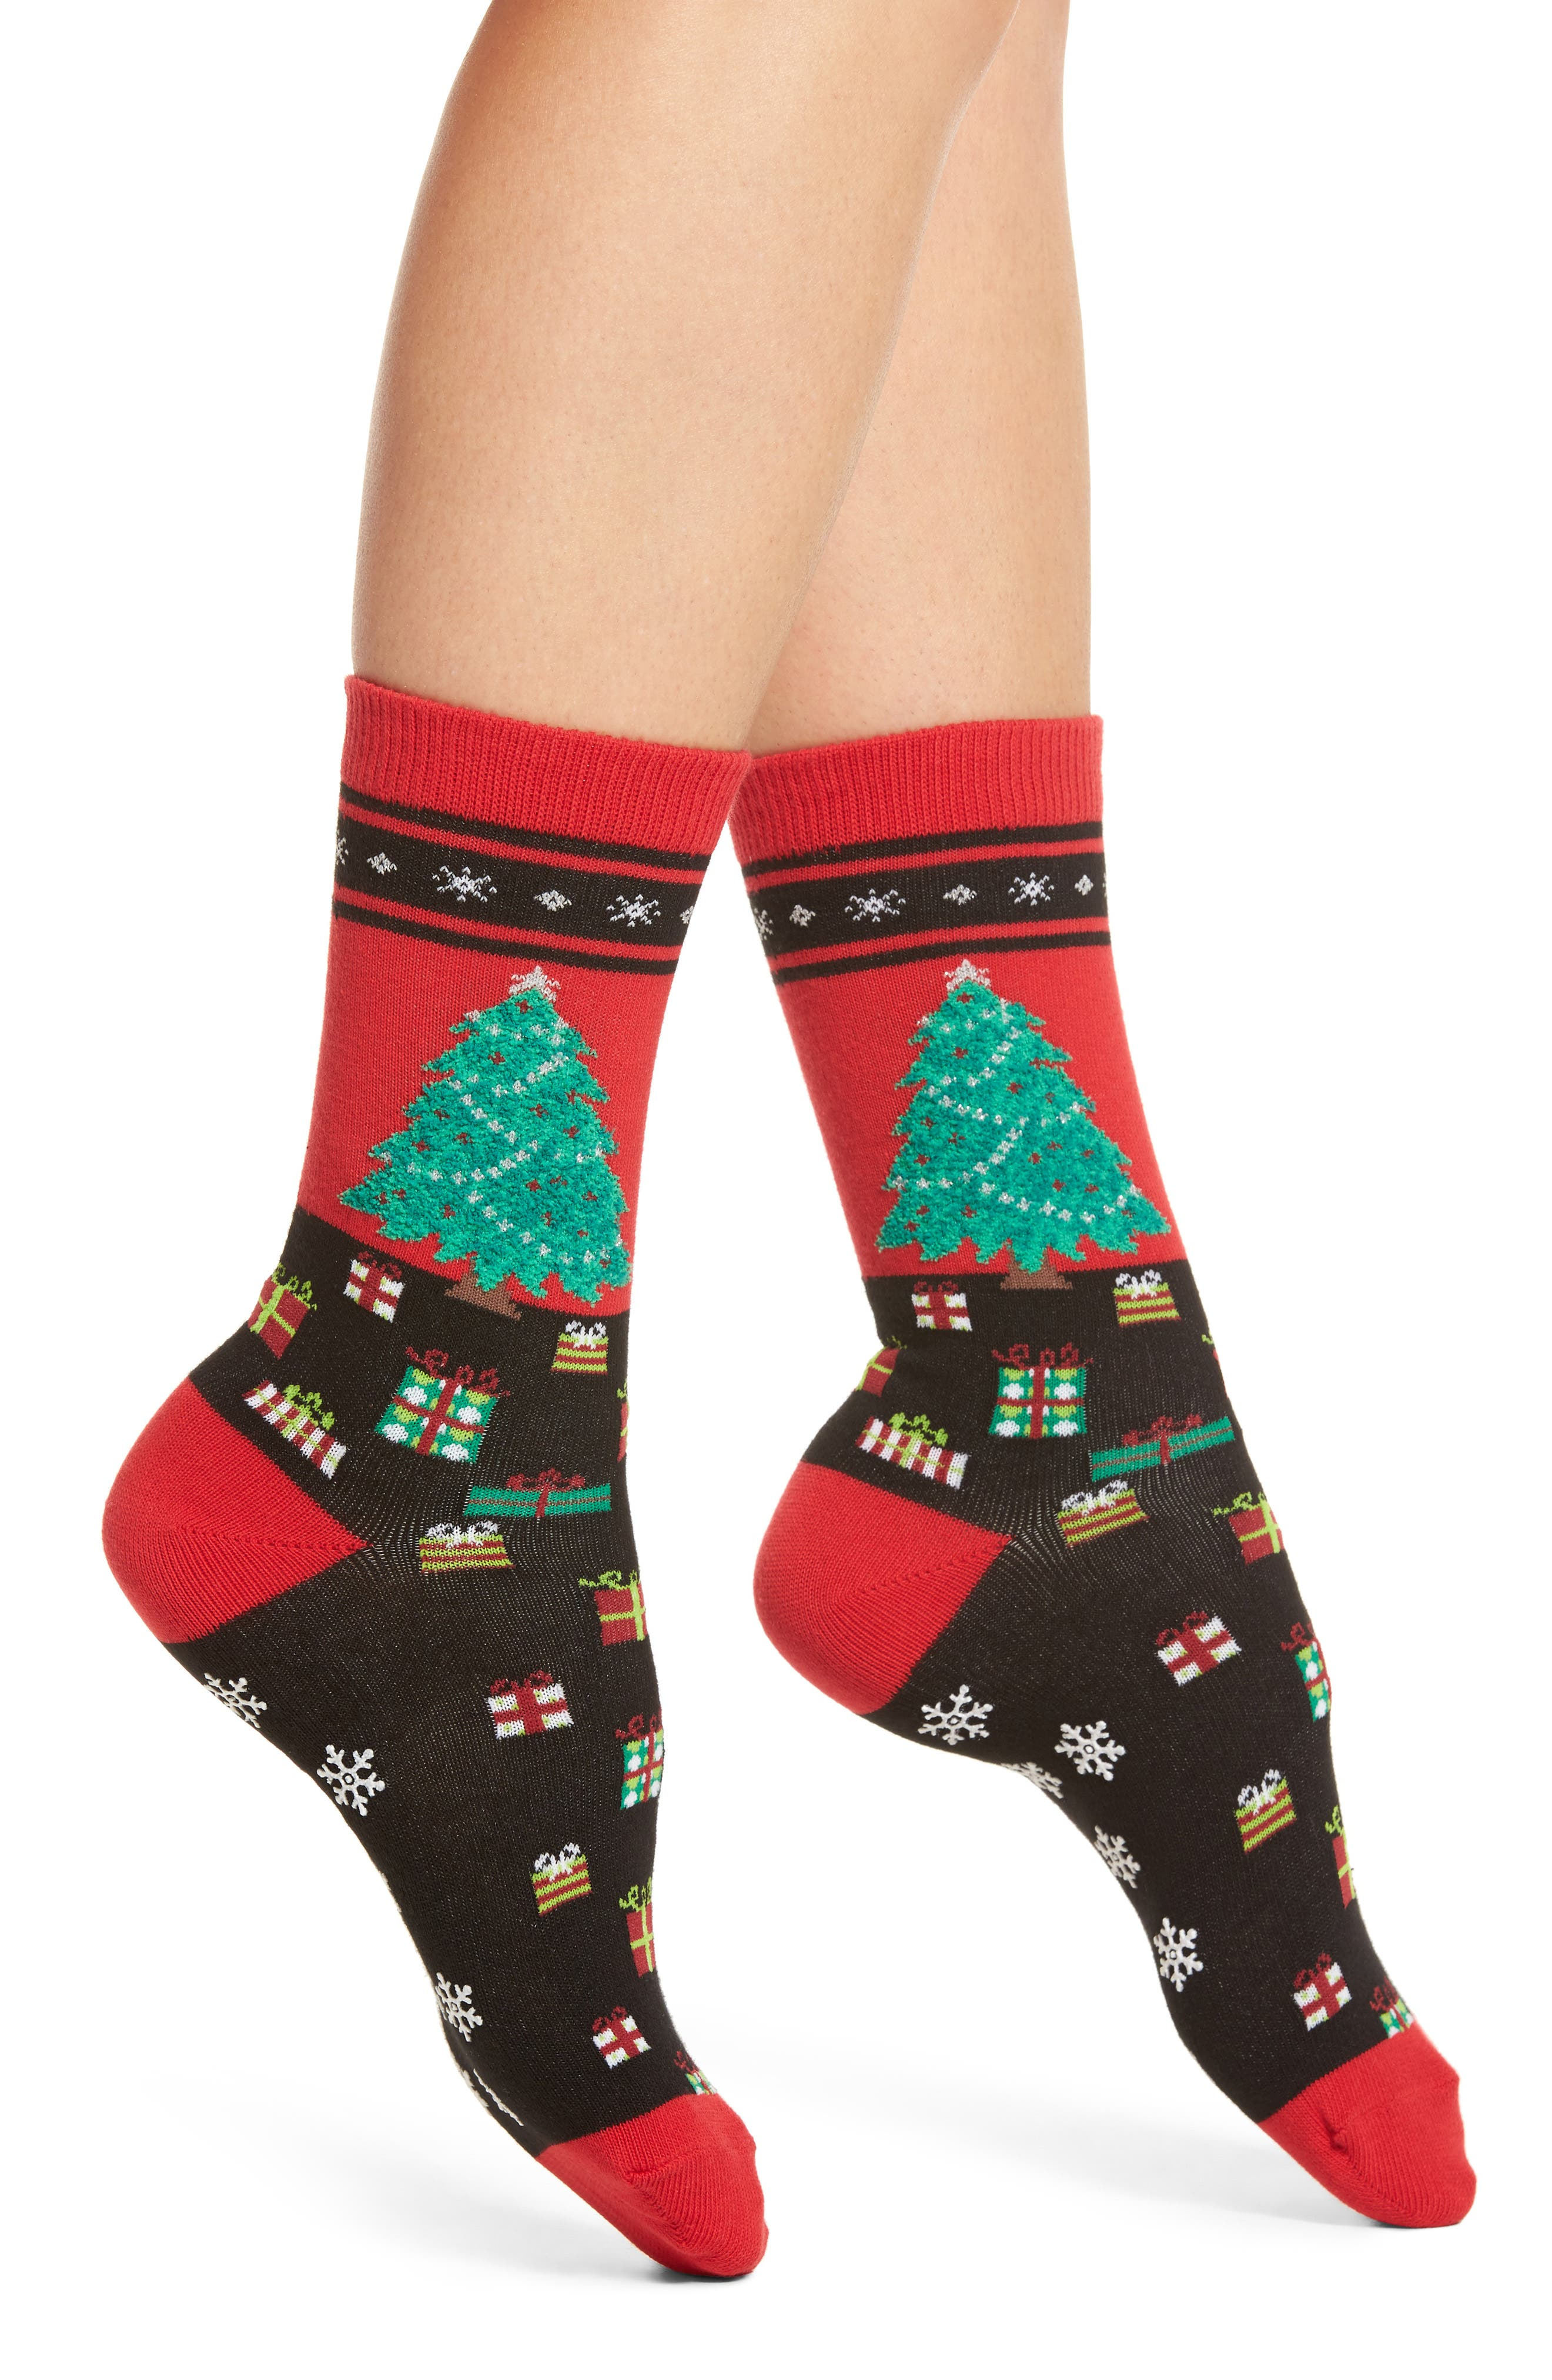 Hot Sox Christmas Tree Nonskid Socks (3 for $15)